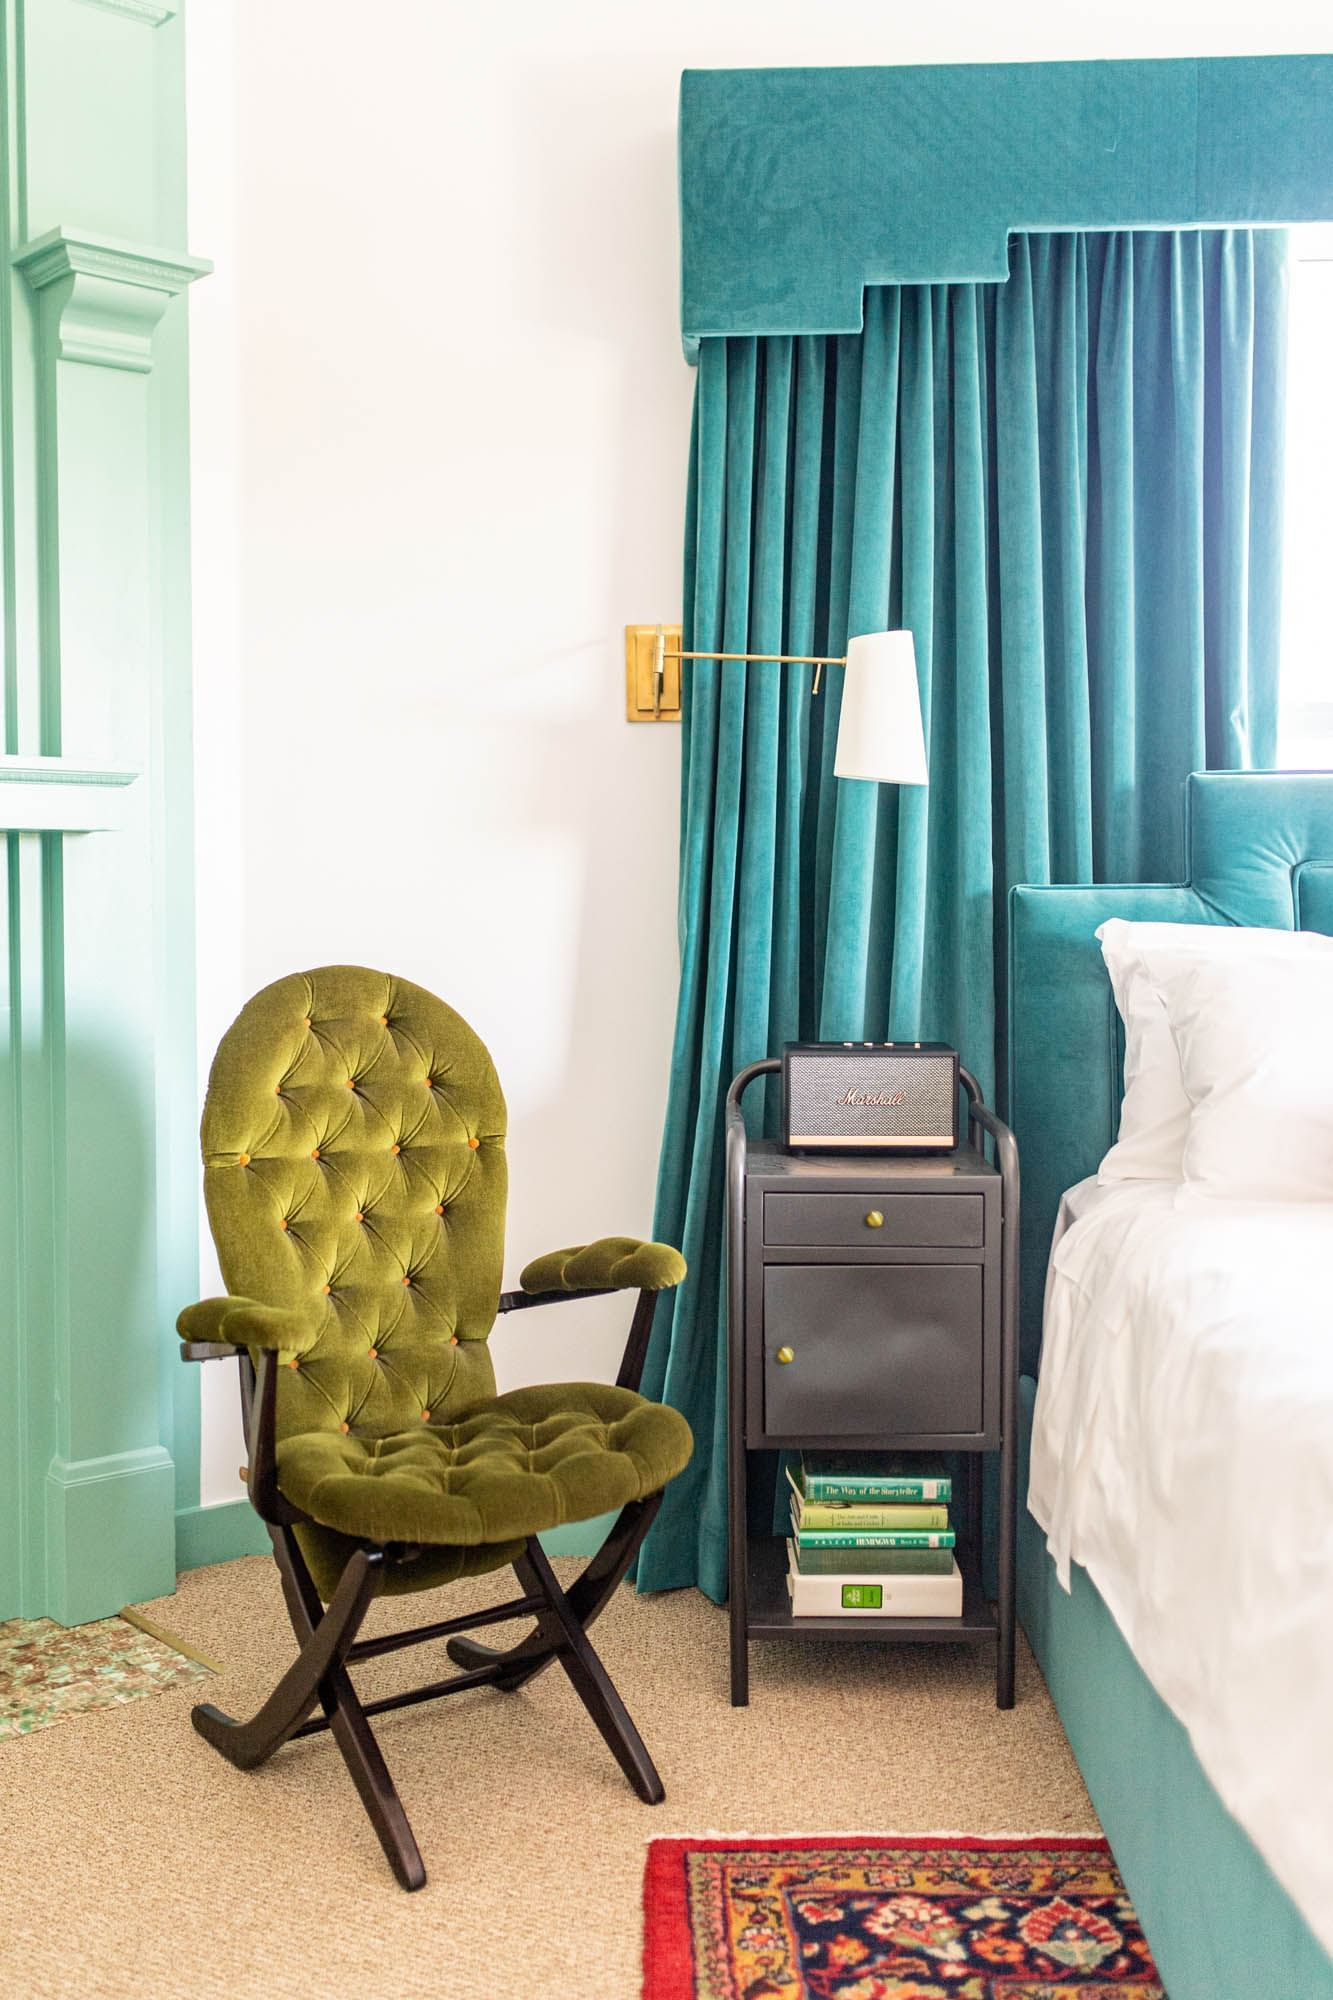 chair next to bed with blue bedframe